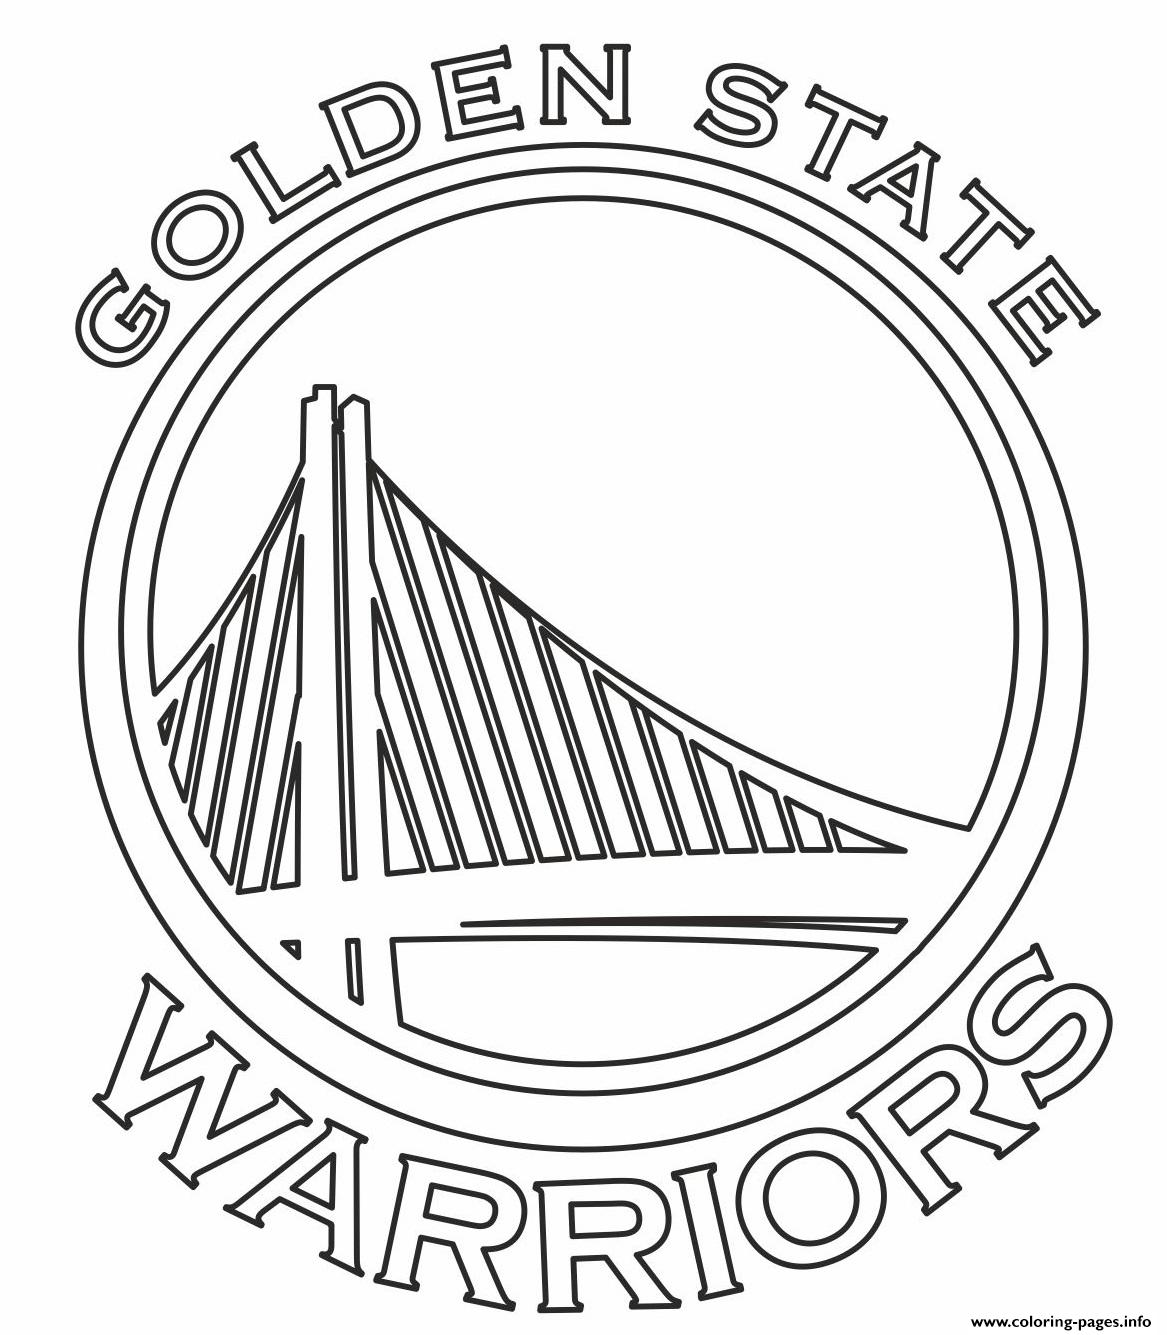 photograph about Warriors Printable Schedule named Nba Groups Brand Golden Nation Warriors Coloring Internet pages Printable